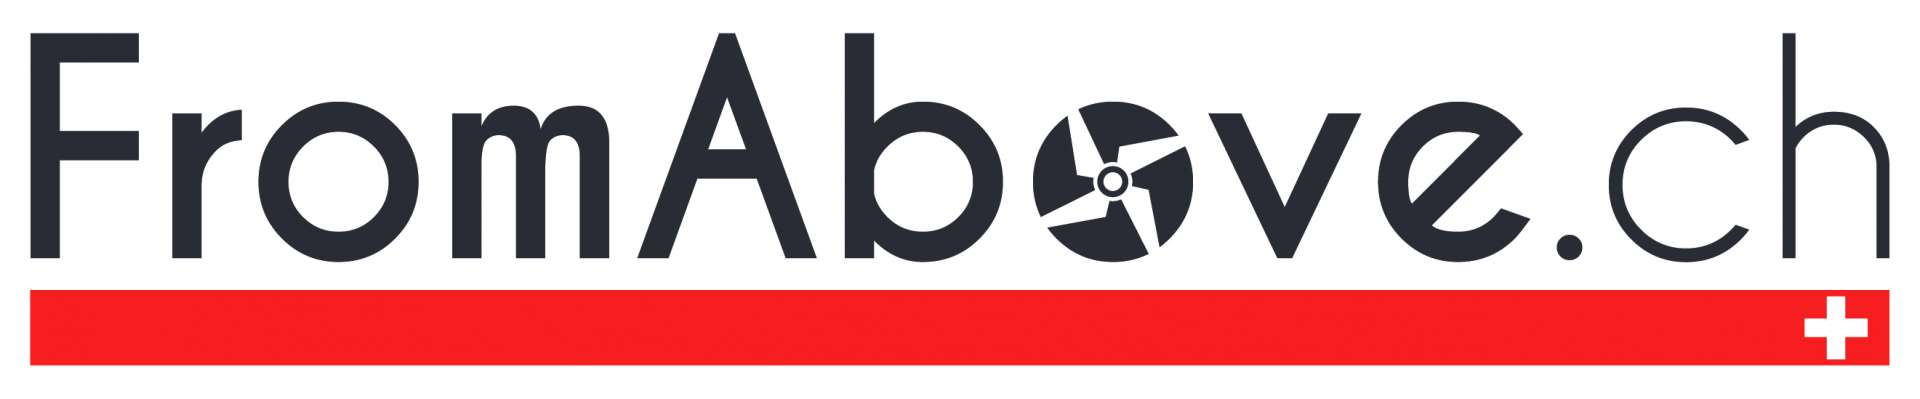 FromAbove.ch logo